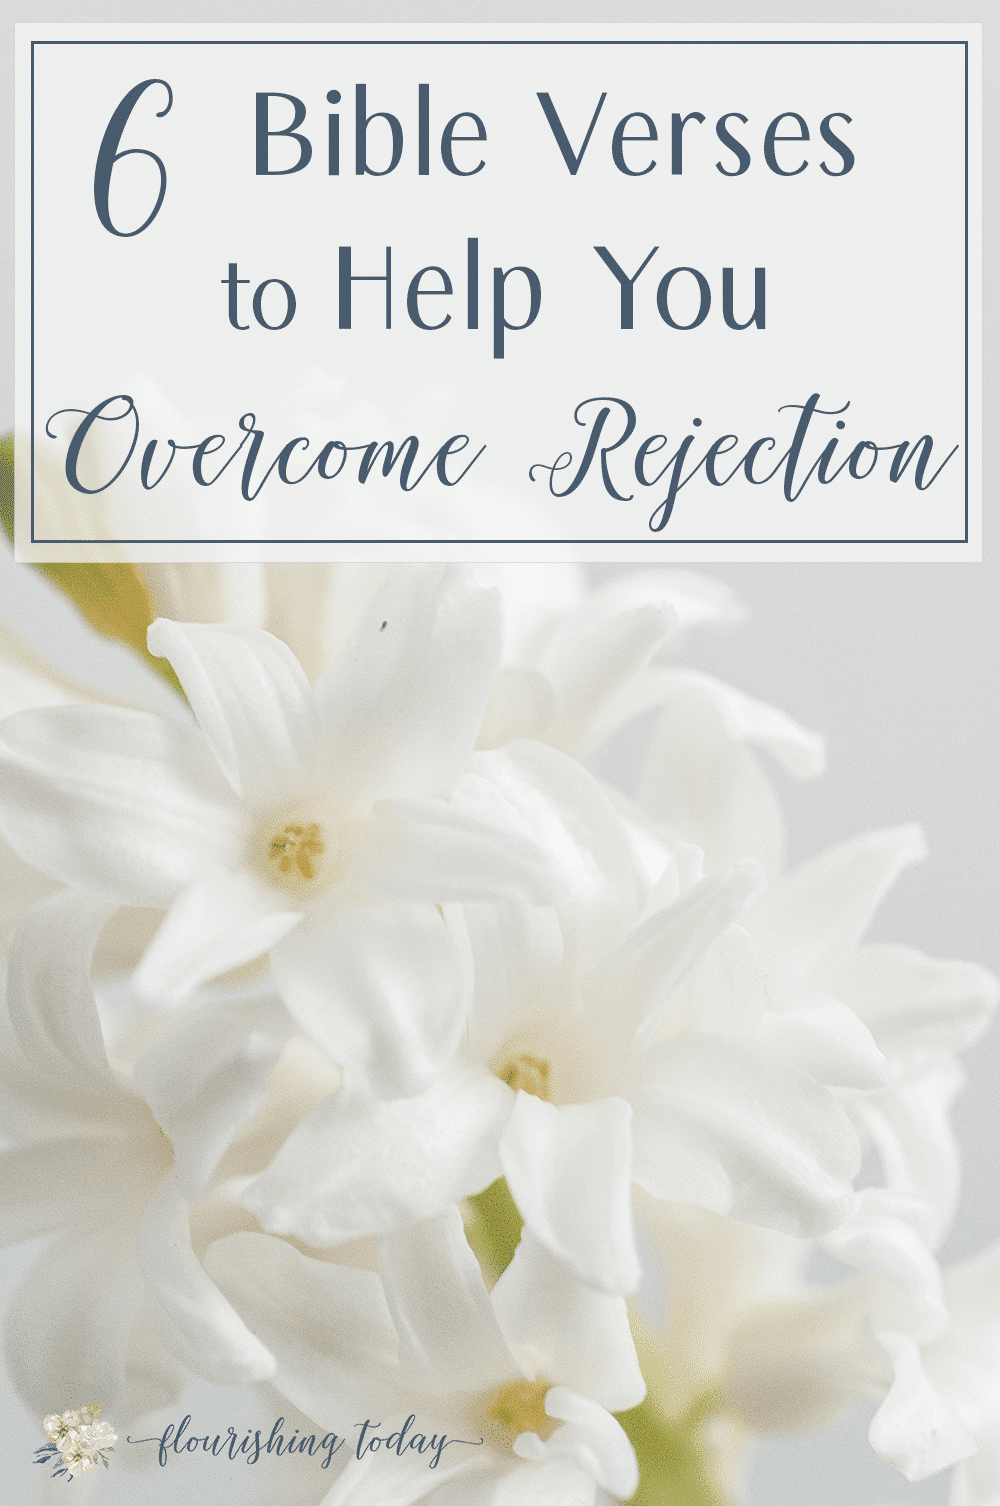 Are you struggling to overcome rejection in your life? Are past wounds keeping you from flourishing relationships? Here are 6 Bible verses and confession to help you overcome rejection in life. #bibleverses #scriptures #prayers #freeprintable